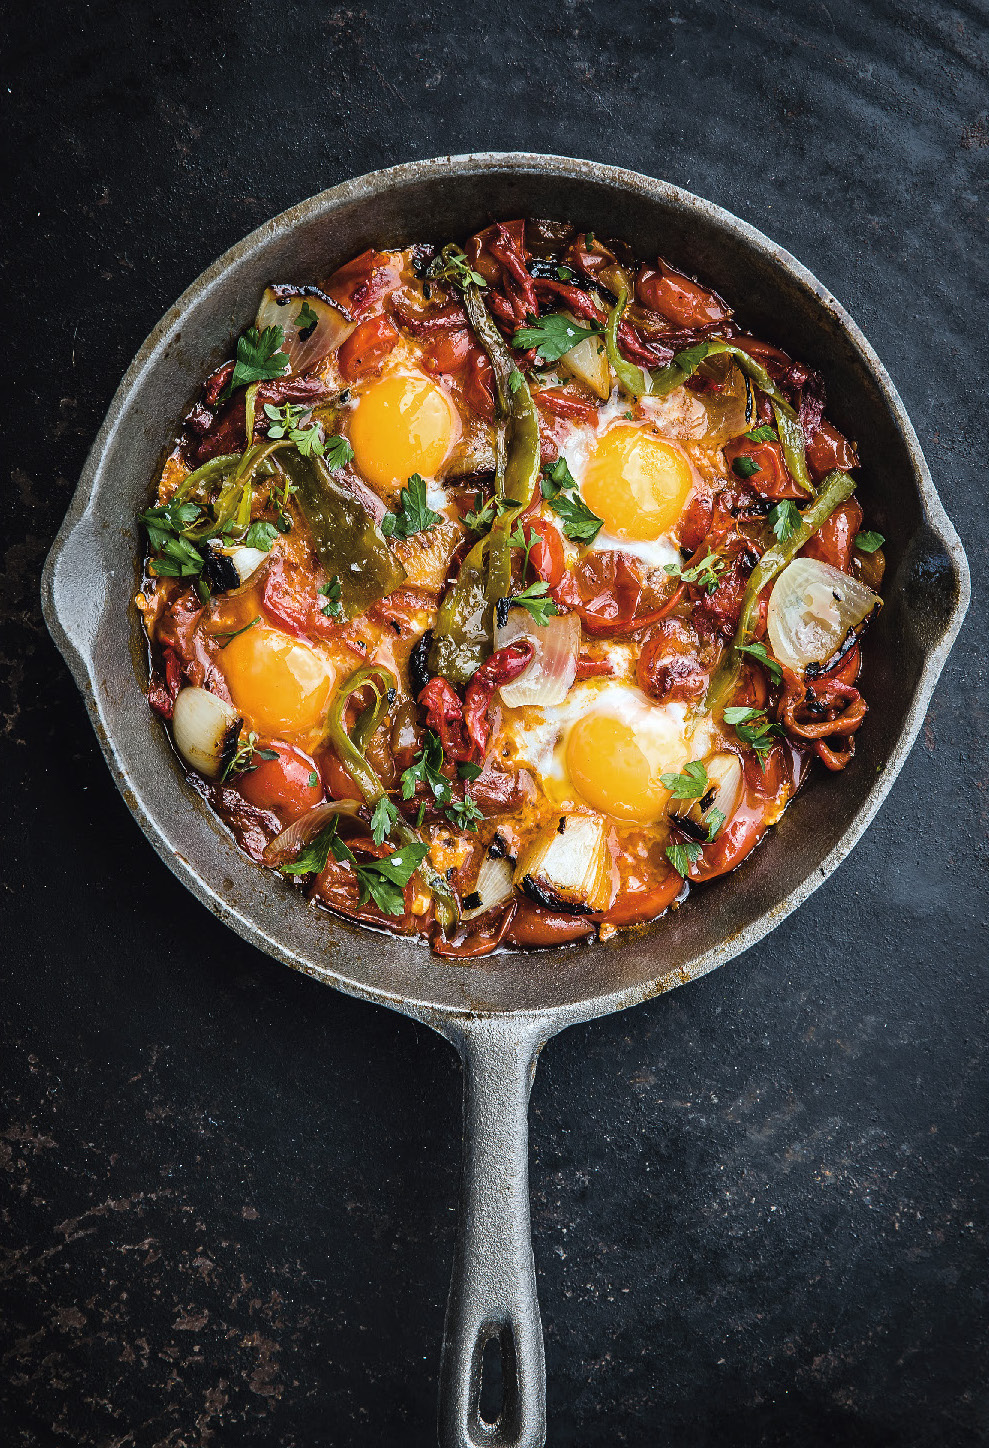 Piperade, eggs